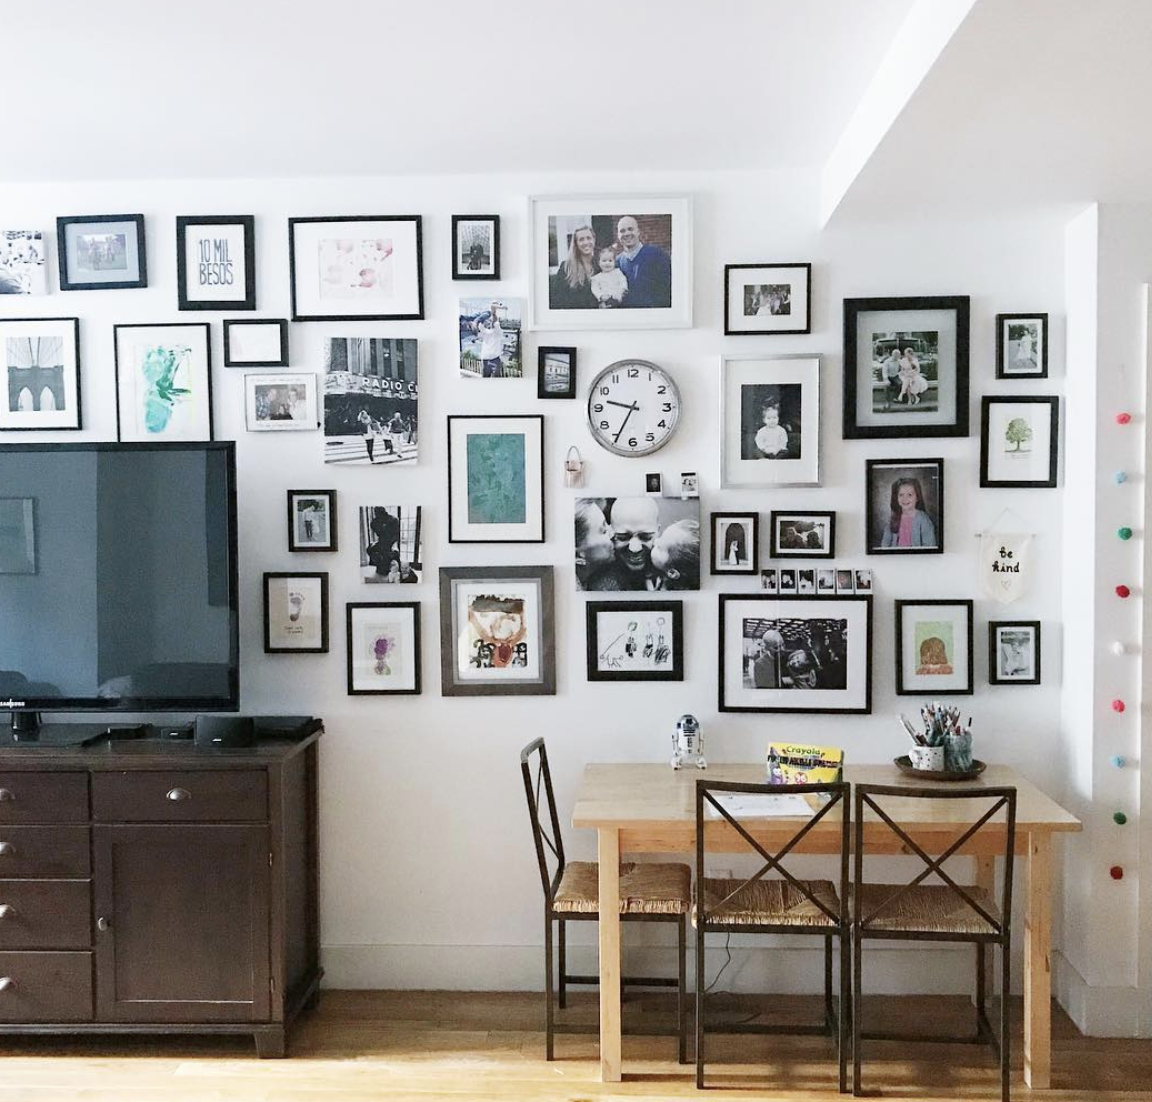 Our apartment gallery wall - see more on  @artbymegan .